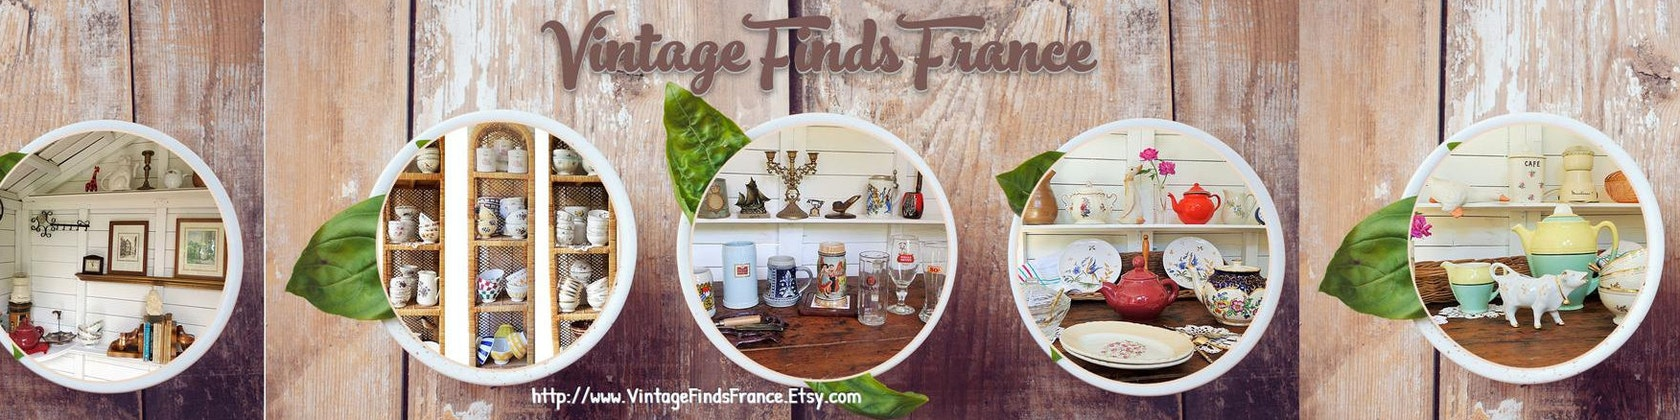 French Vintage Kitchen and Home décor online Etsy store